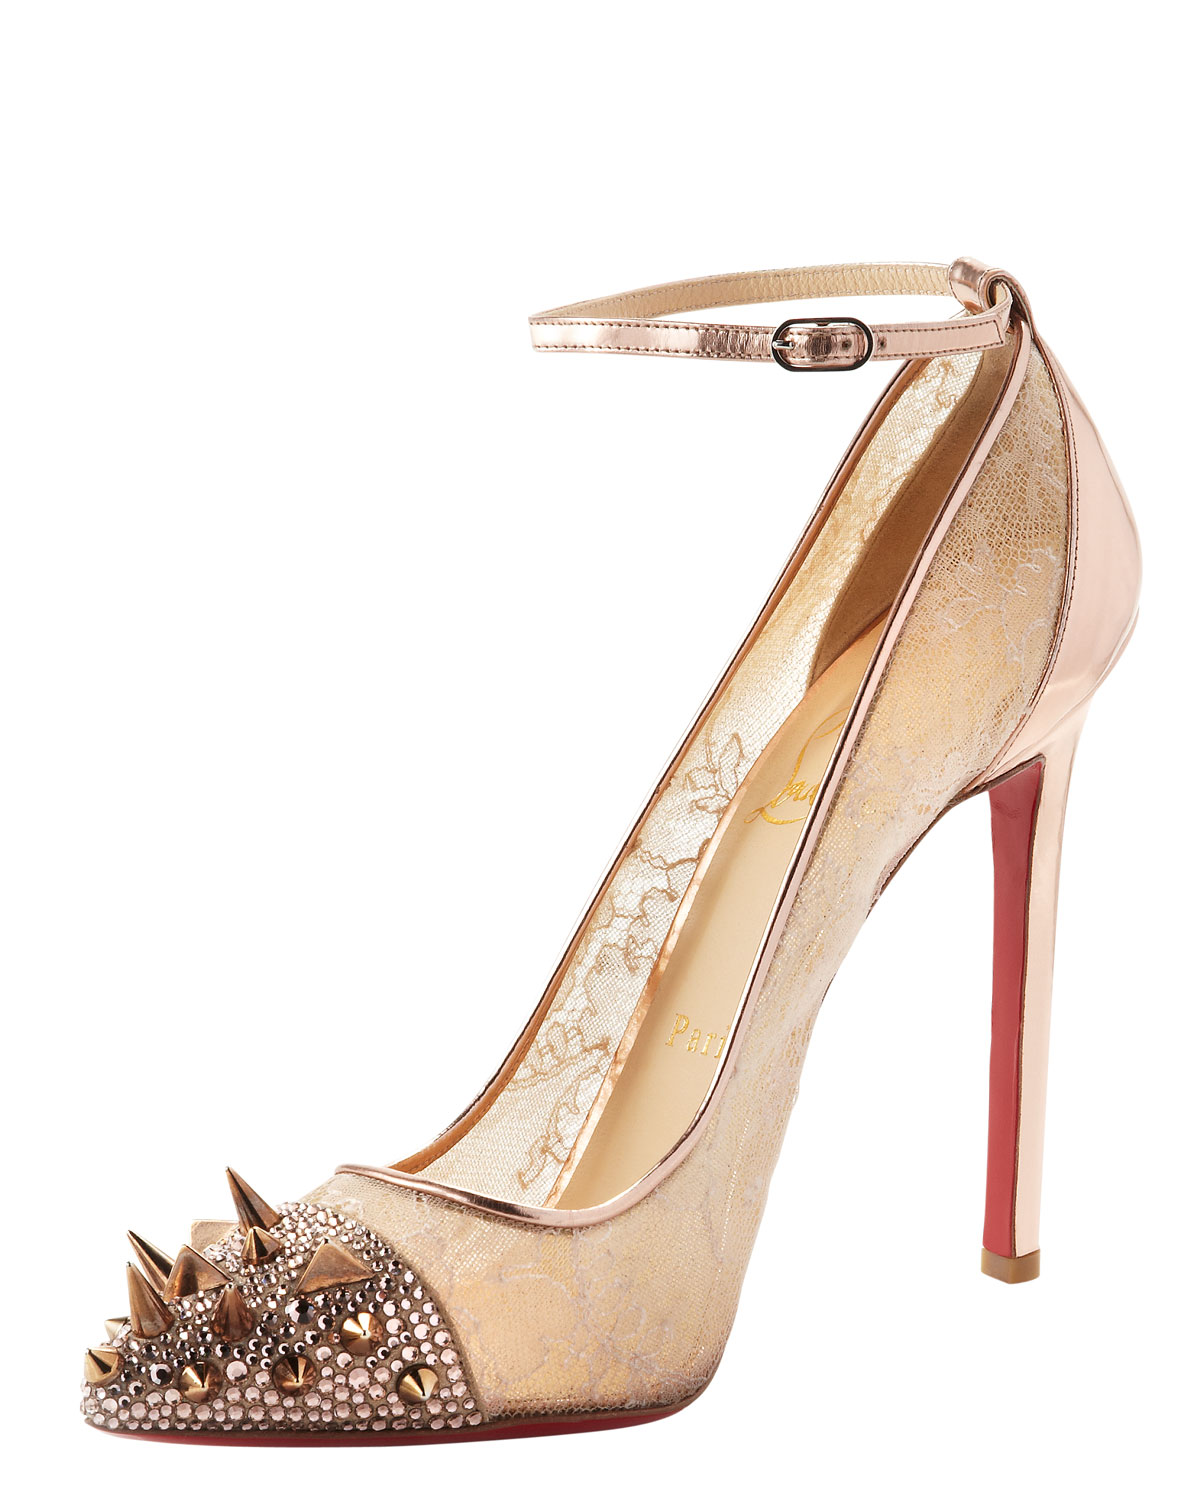 d8144a99c8f8 Christian Louboutin - Natural Picks Co Crystal Studembellished Lace and  Metallic Leather Pumps - Lyst